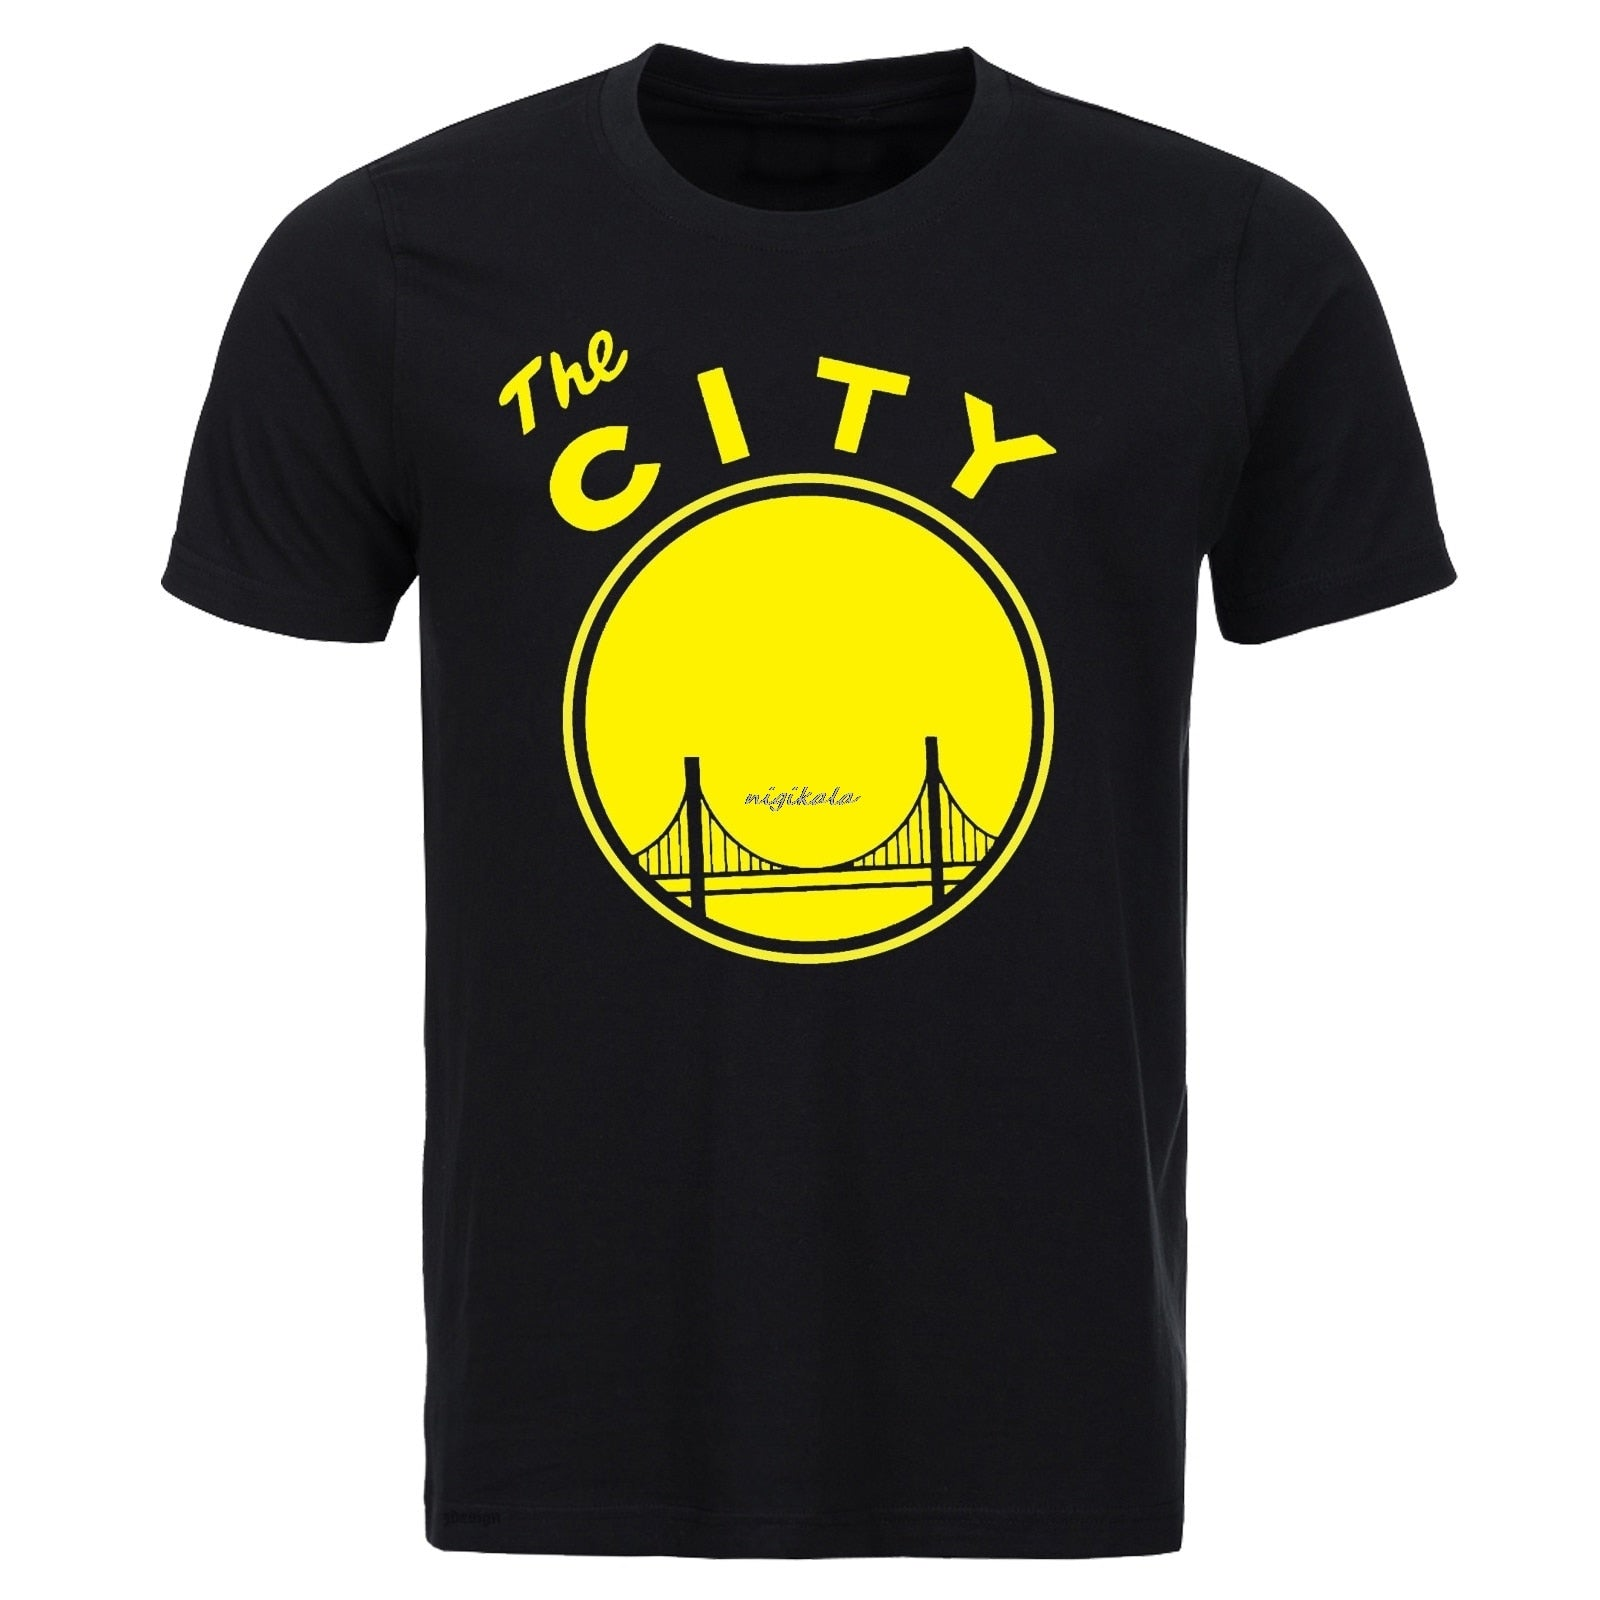 Short Sleeve Golden State Warriors  The City  T-shirt